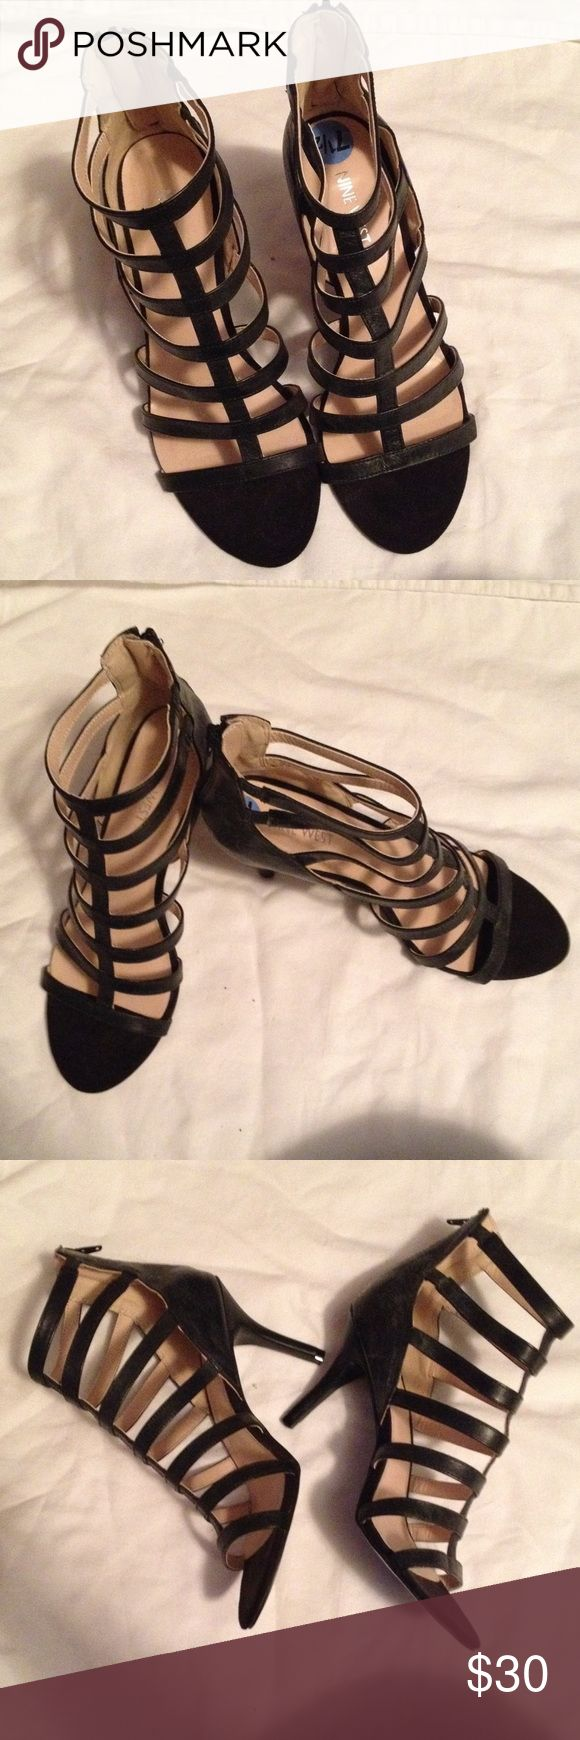 Nine West heels Worn once. Perfect condition. I simply don't have much purpose for them. They are gorgeous and deserved to be worn out and about all summer. Nine West Shoes Heels